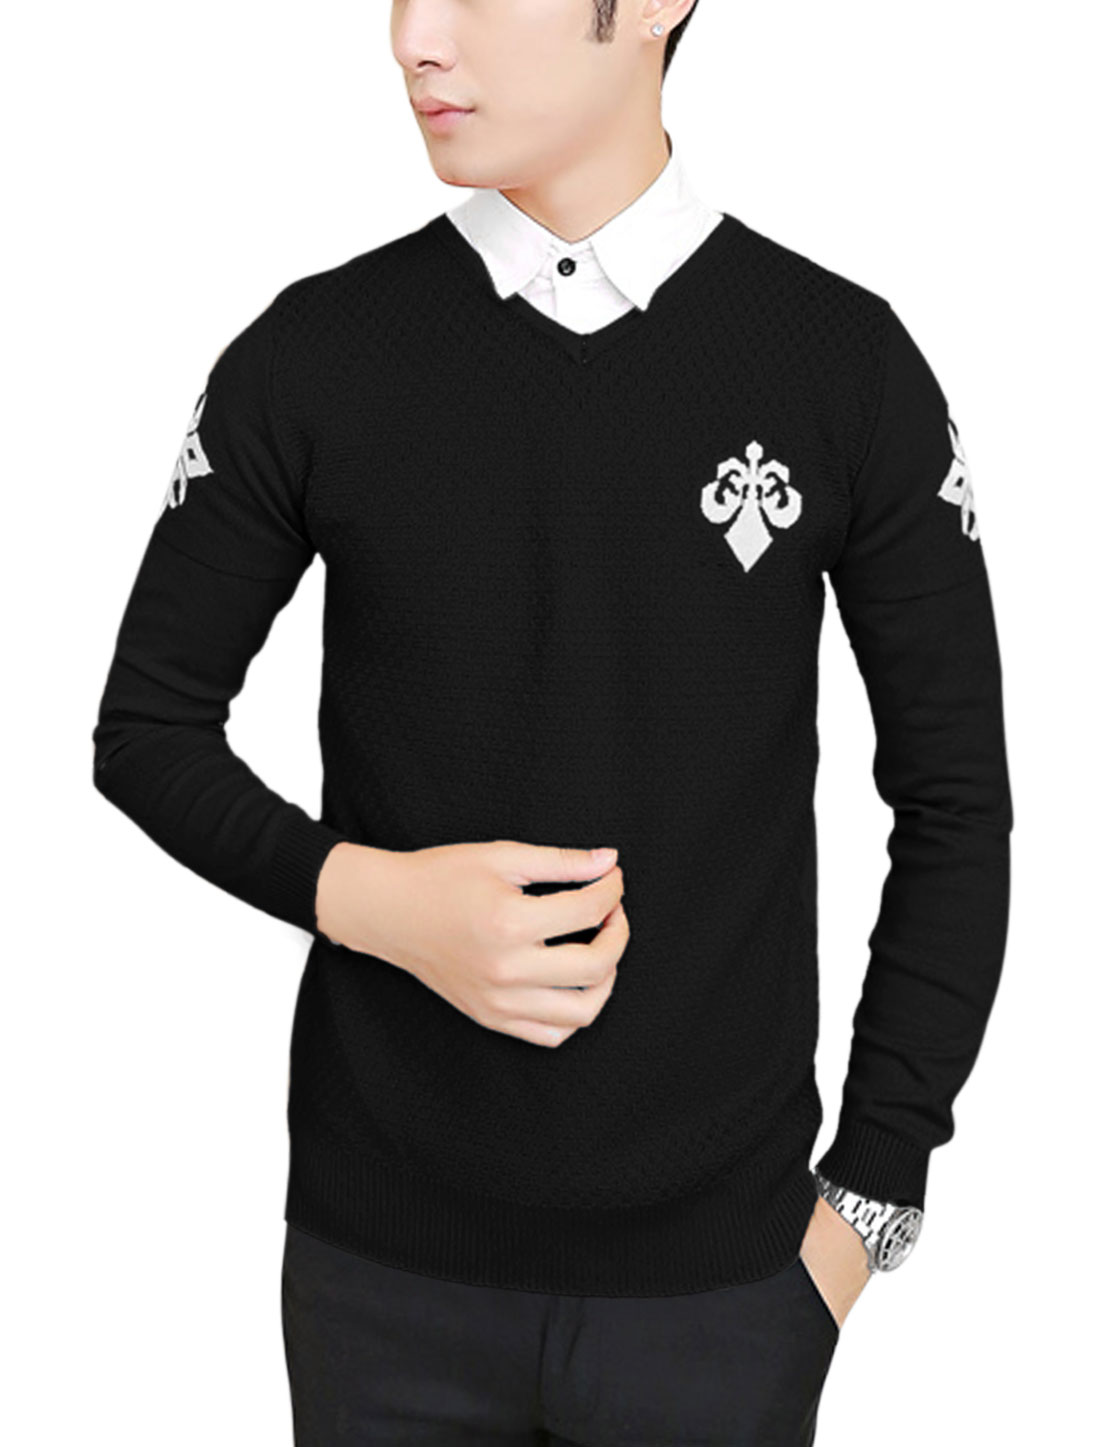 Men V Neck Letters Pattern Textured Design Casual Knit Shirt Black M